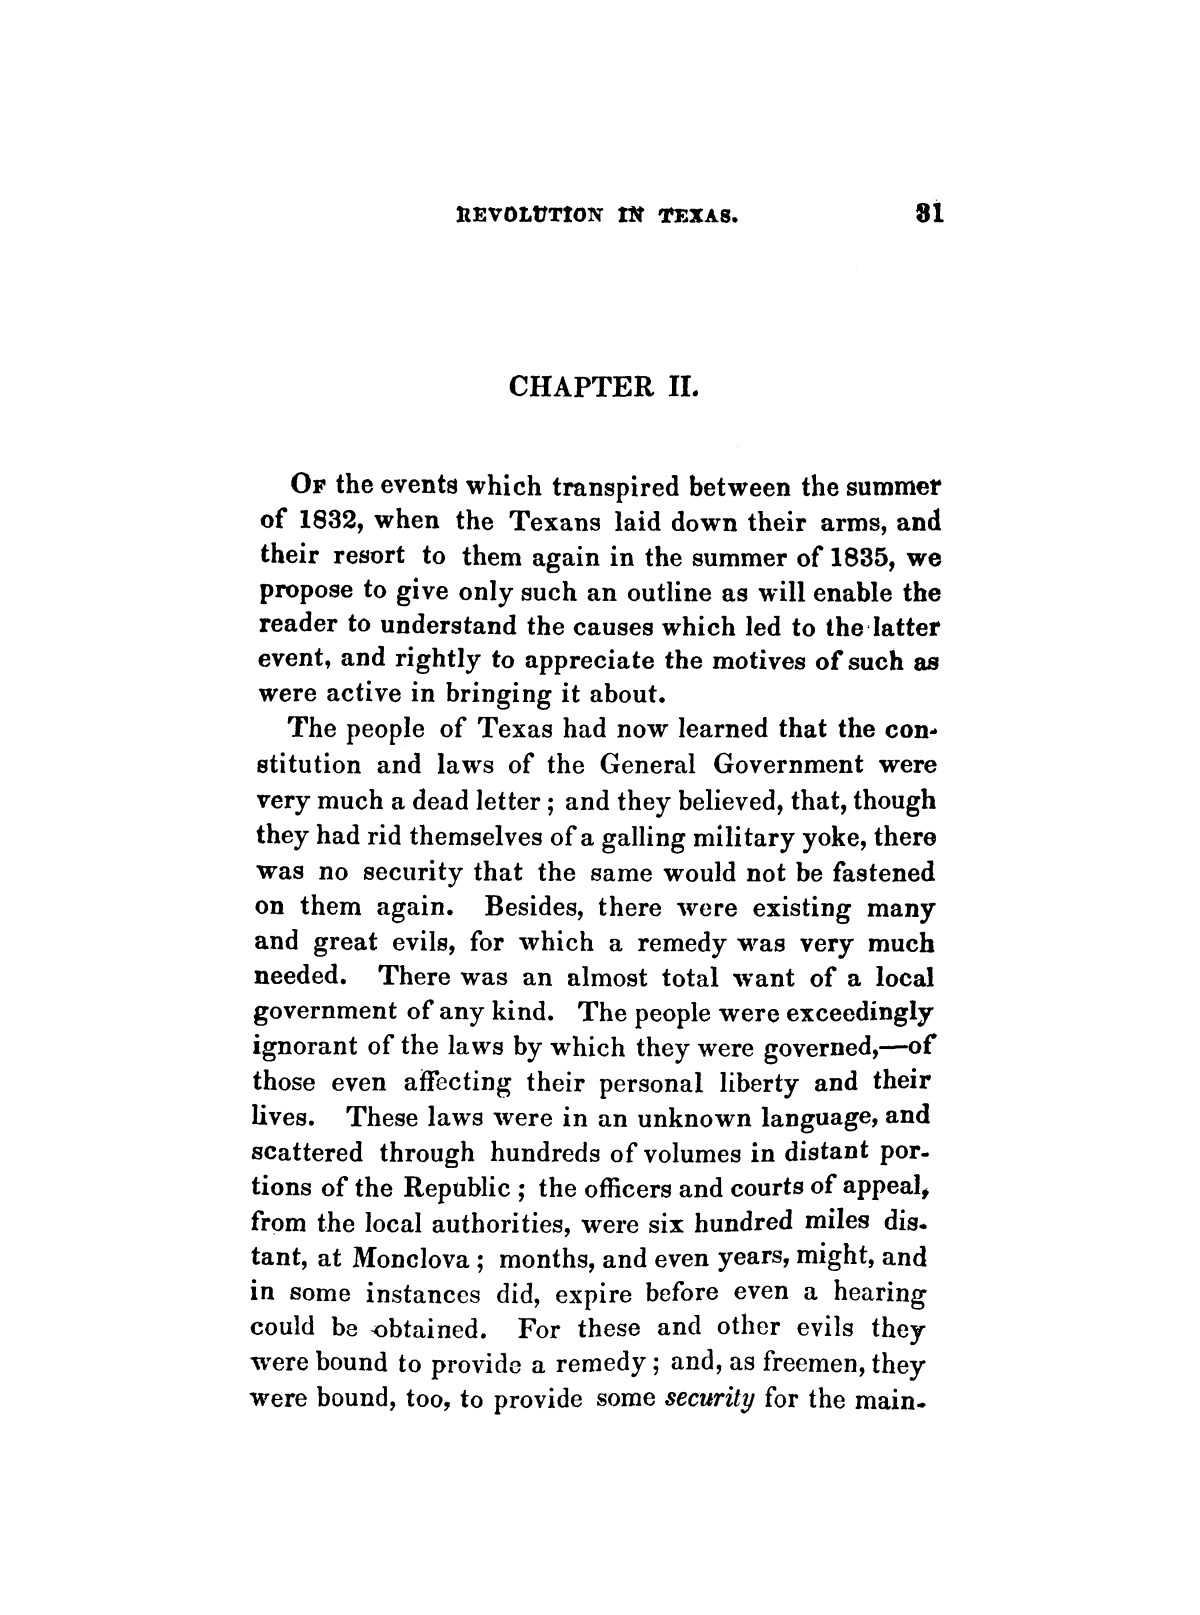 History of the revolution in Texas, particularly of the war of 1835 & '36; together with the latest geographical, topographical, and statistical accounts of the country, from the most authentic sources. Also, an appendix. By the Rev. C. Newell.                                                                                                      [Sequence #]: 43 of 227